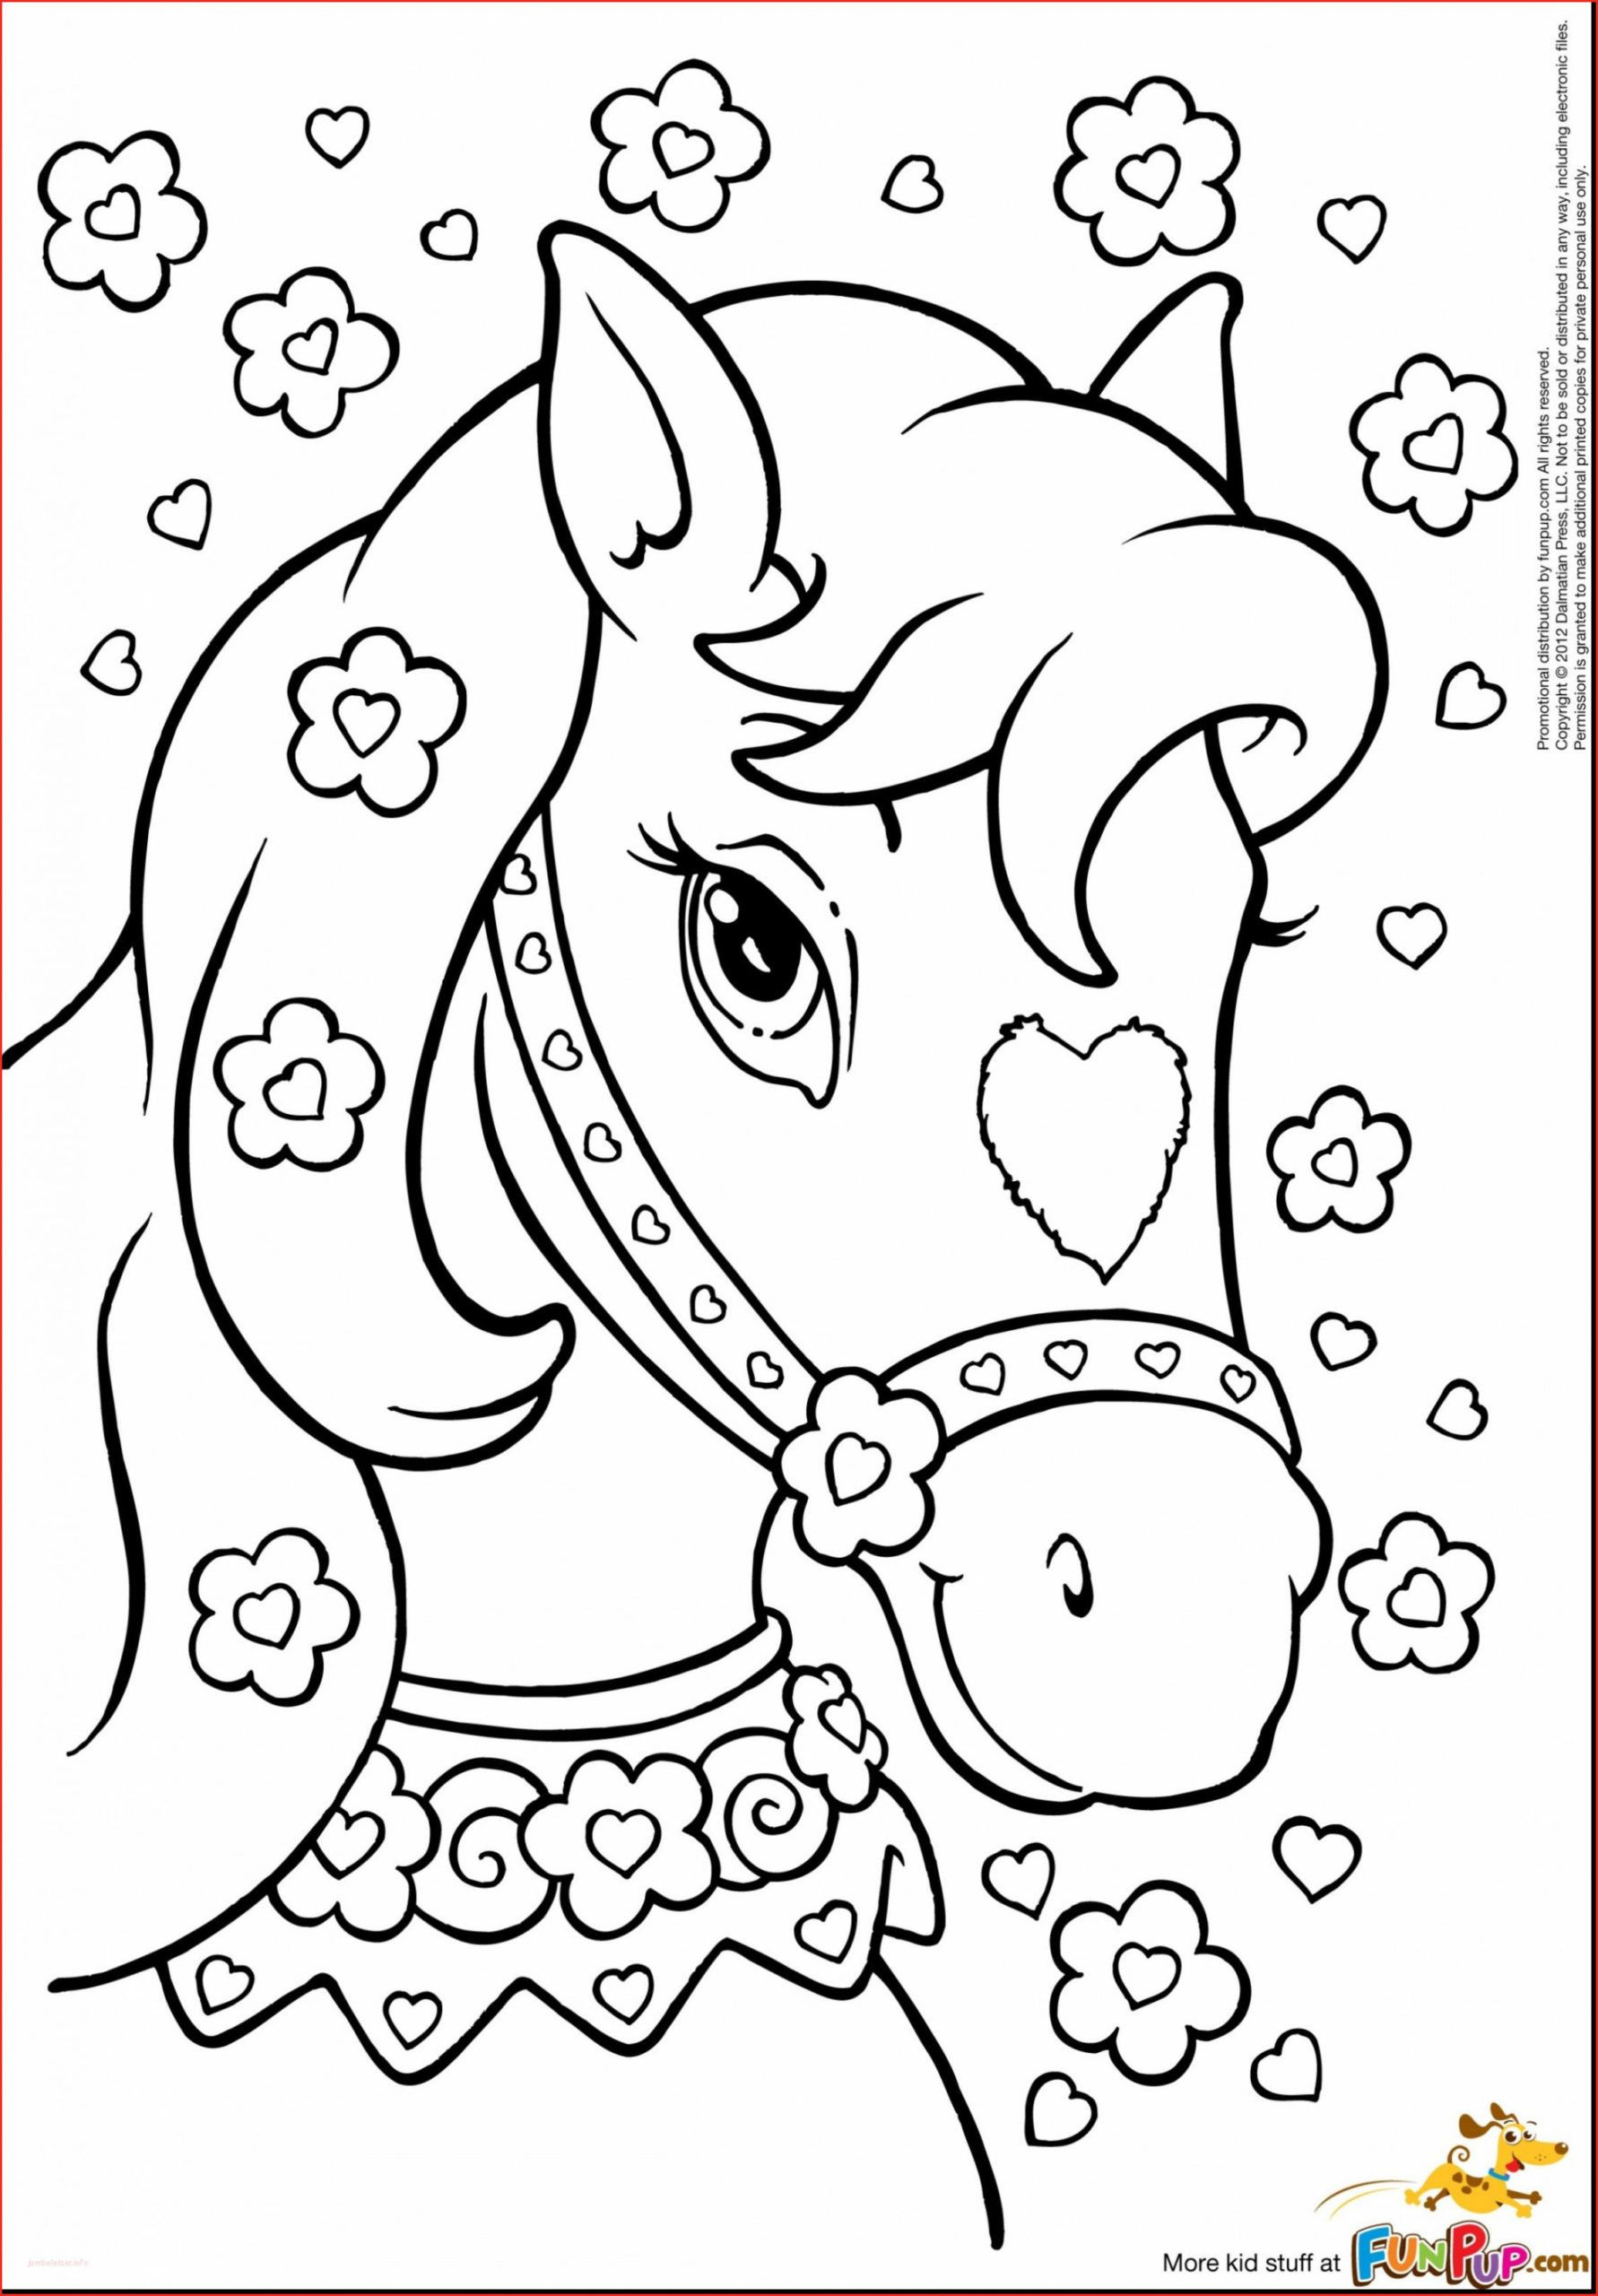 Cute Horse Coloring Page Youngandtae Com Horse Coloring Pages Unicorn Coloring Pages Fall Coloring Pages